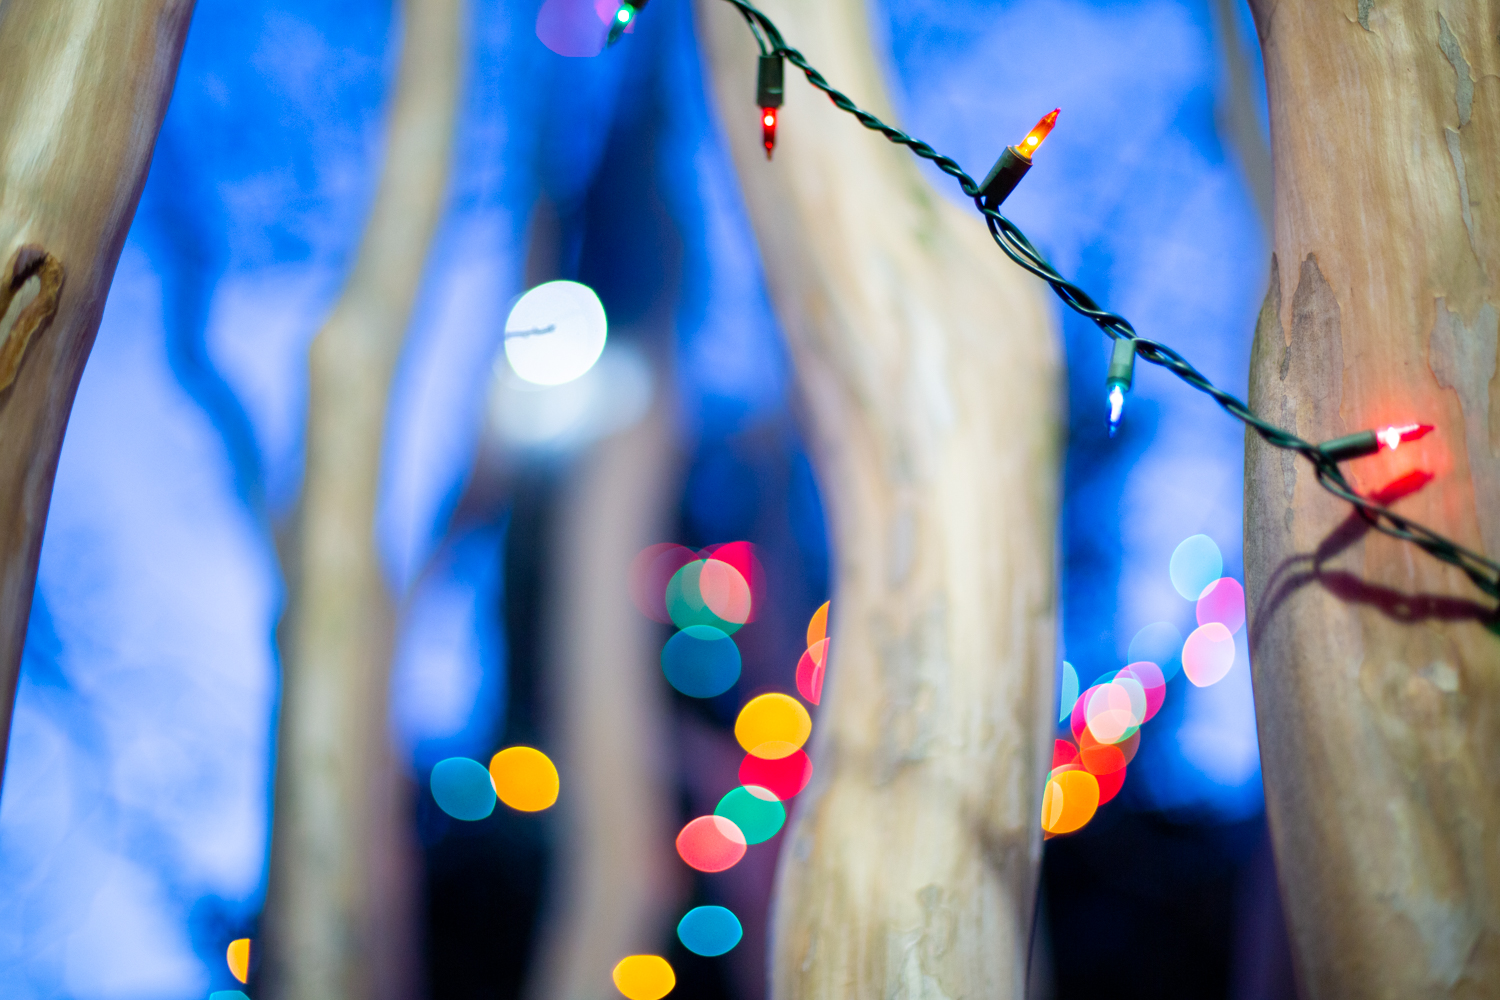 Holiday lights hang from a tree.